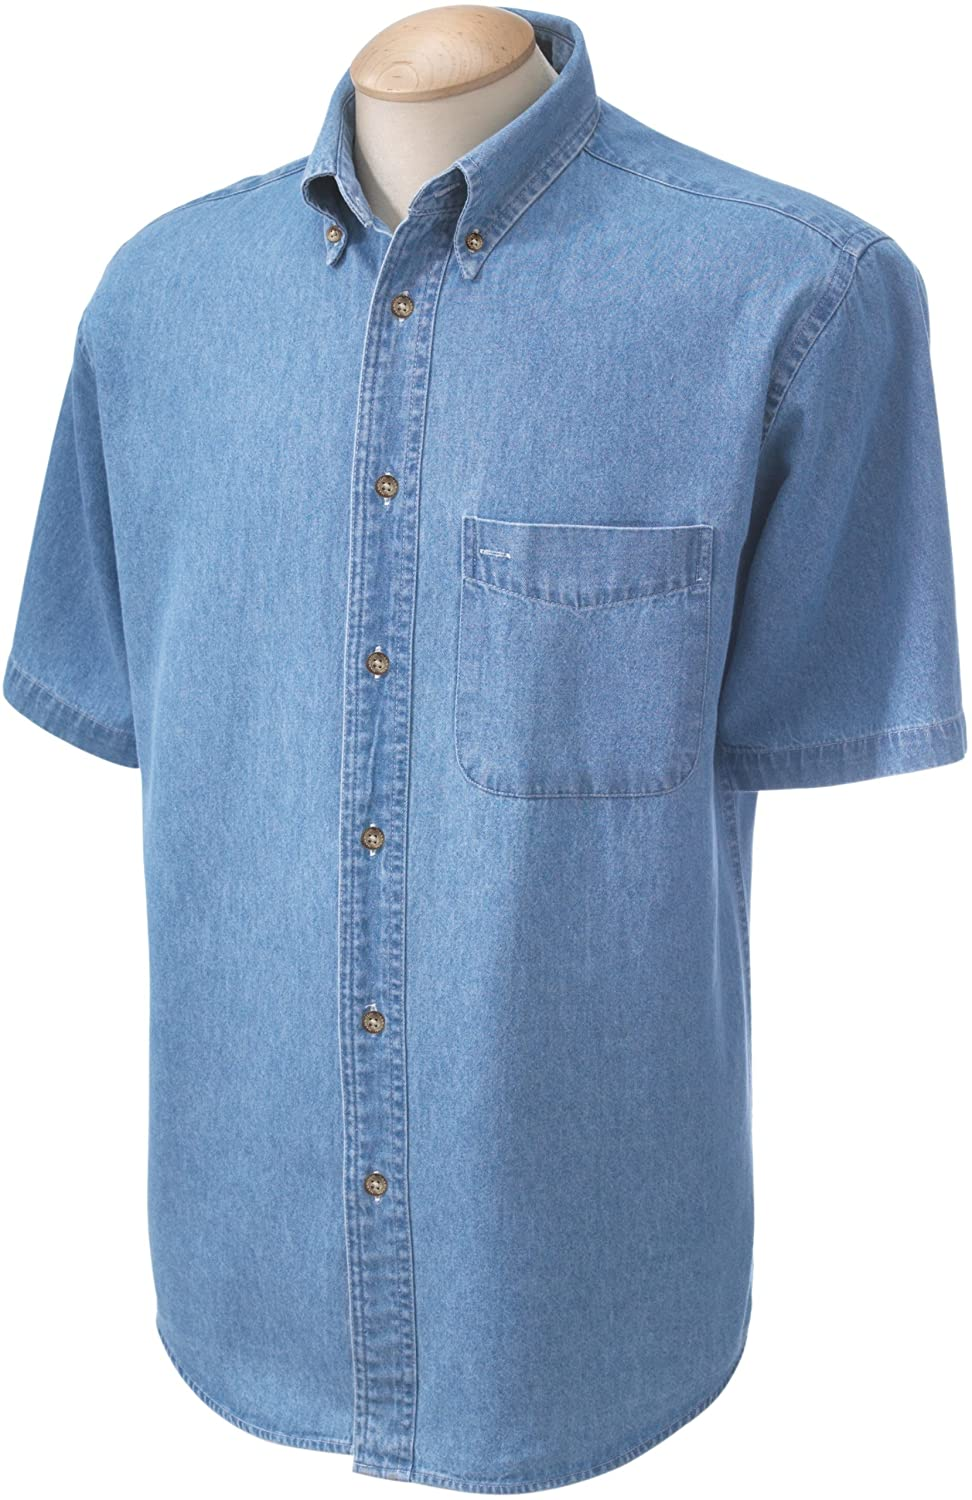 Harriton M550S - Men's 6.5 oz. Short-Sleeve Denim Shirt M40581